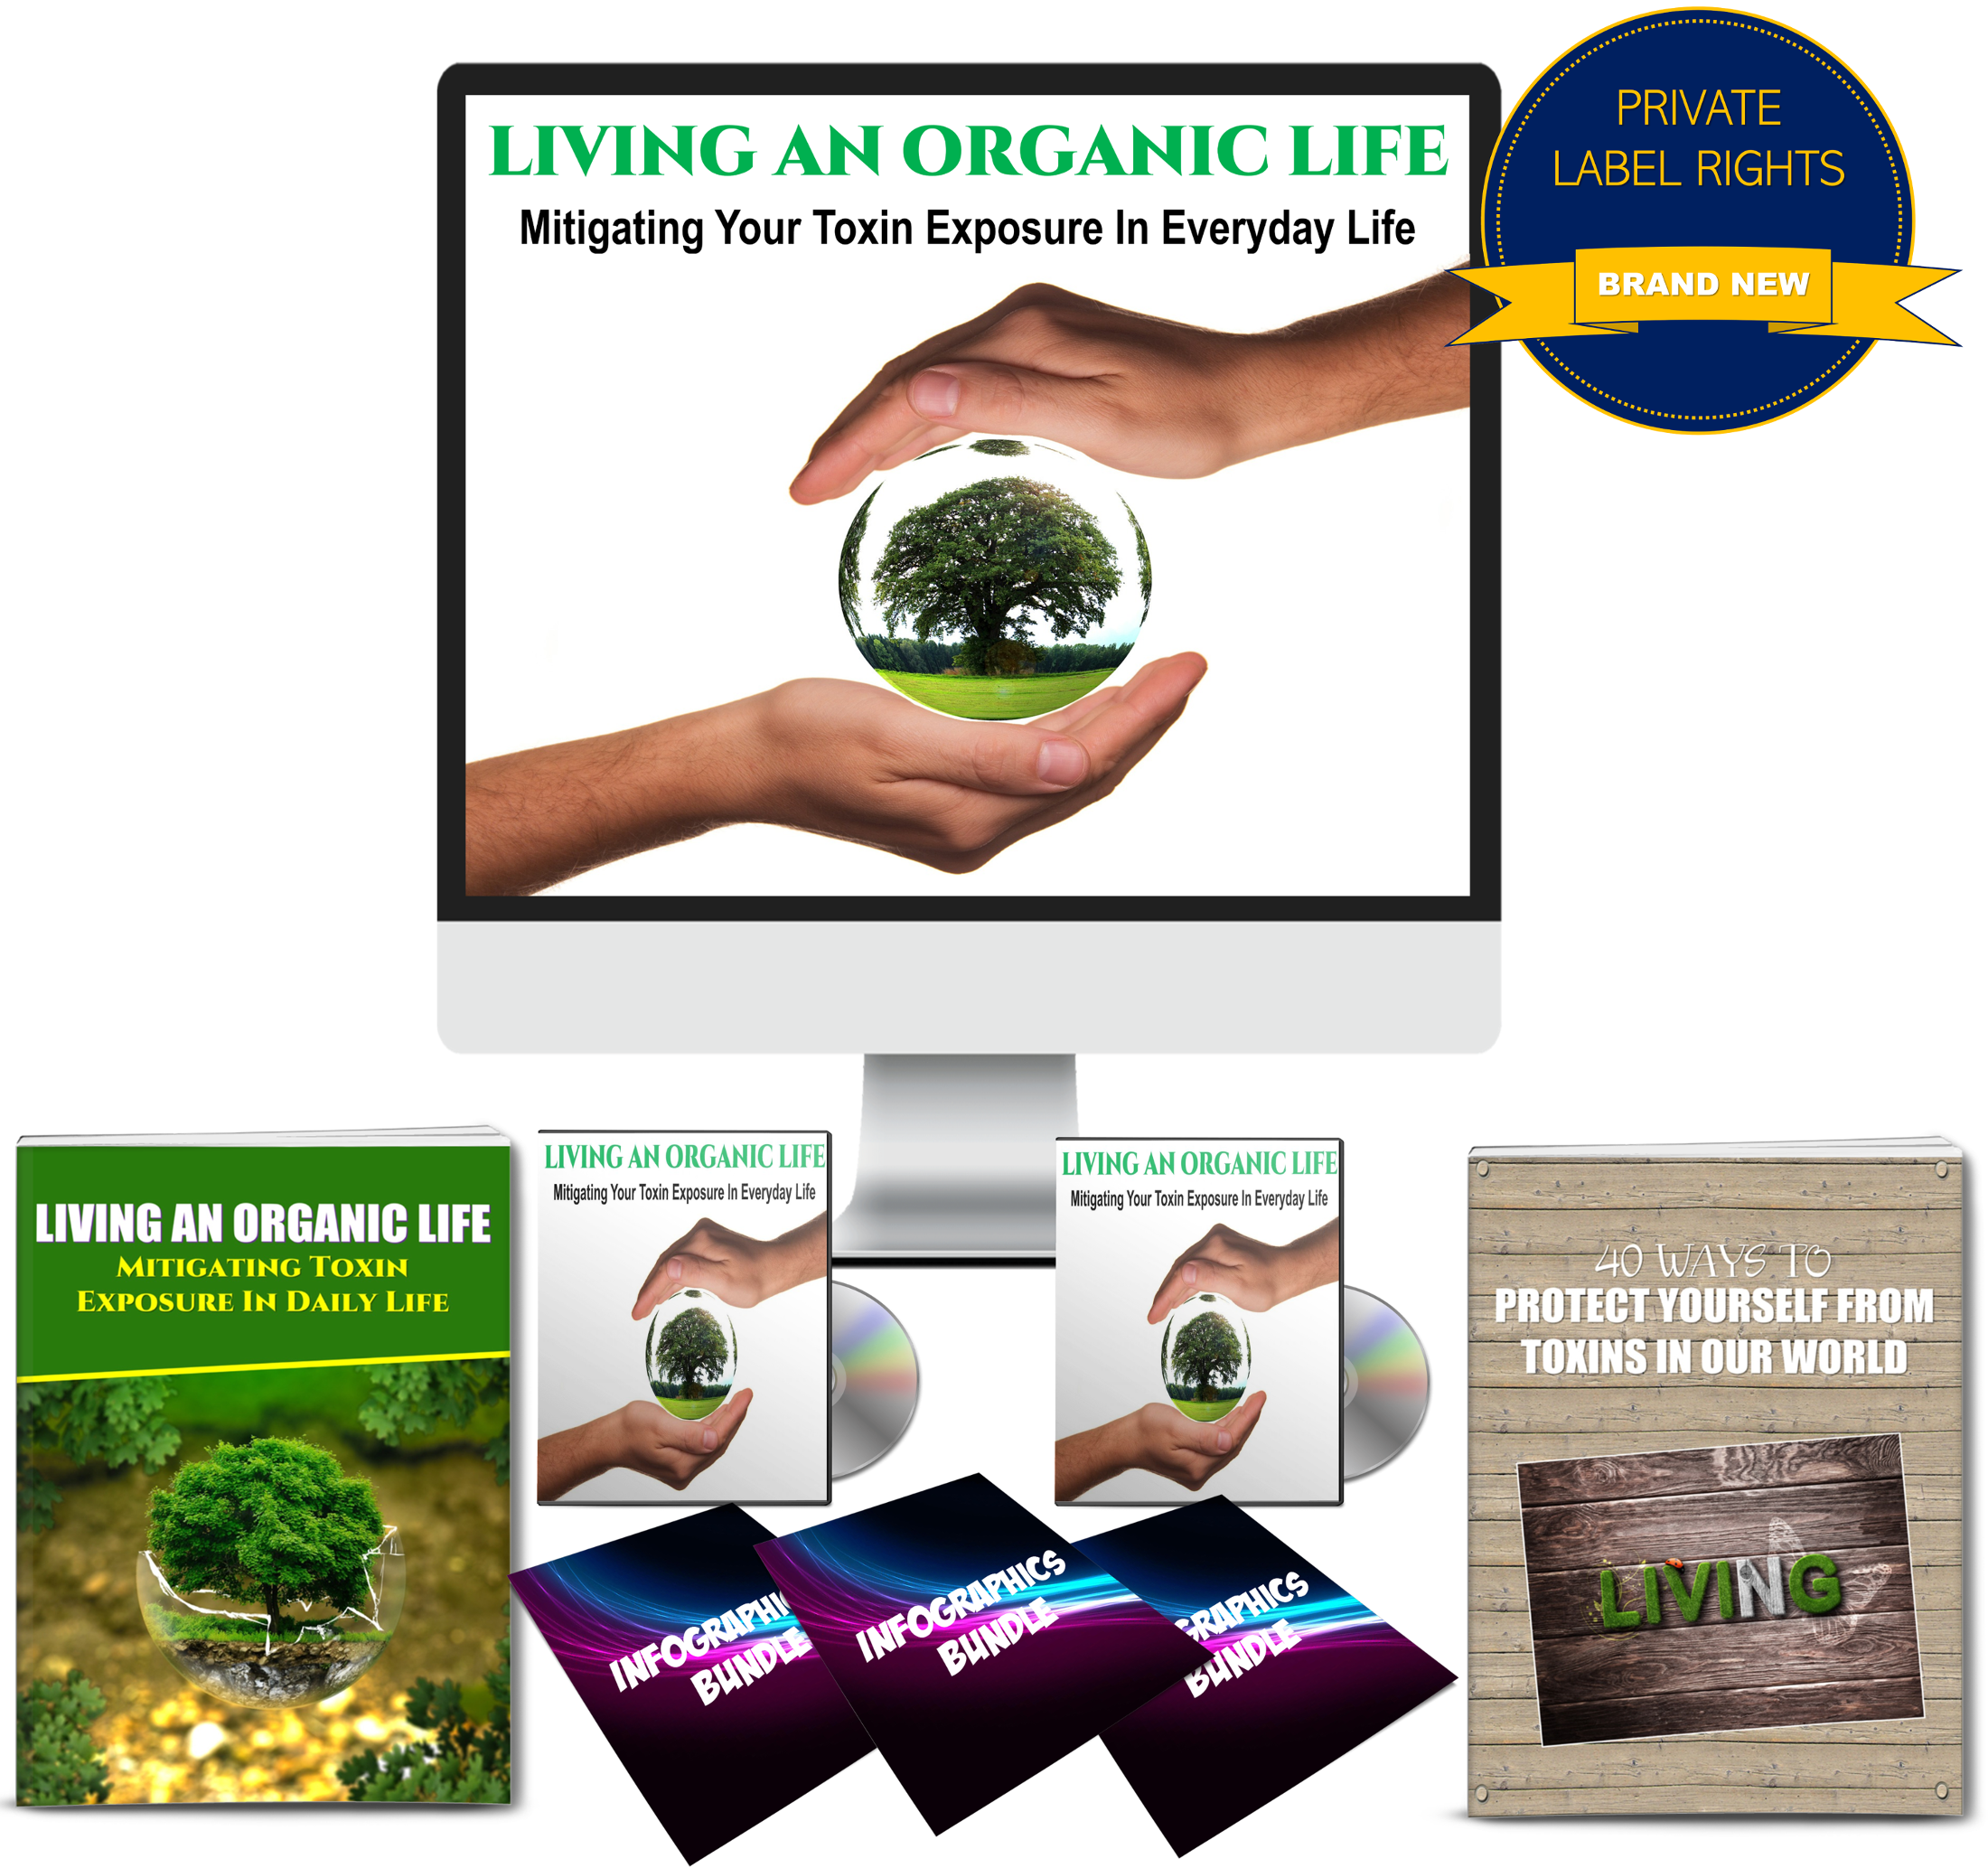 Living An Organic Life: Mitigating Toxin Exposure In Everyday Life